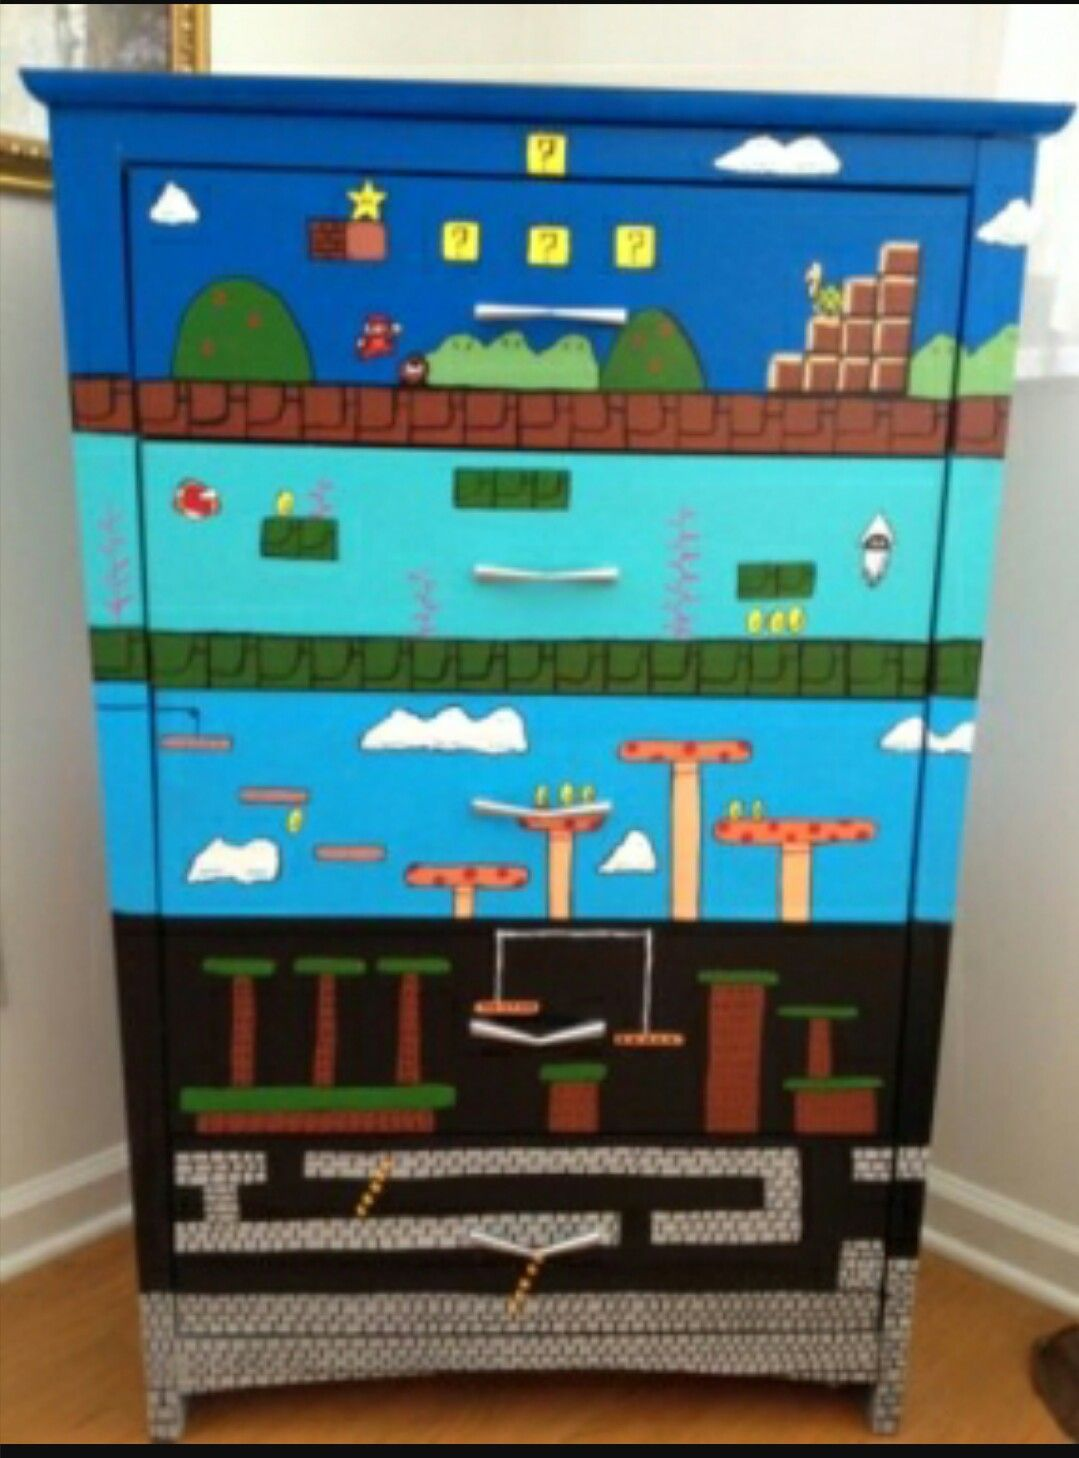 Super Mario furniture dresser chester amznqWZqa Sebi